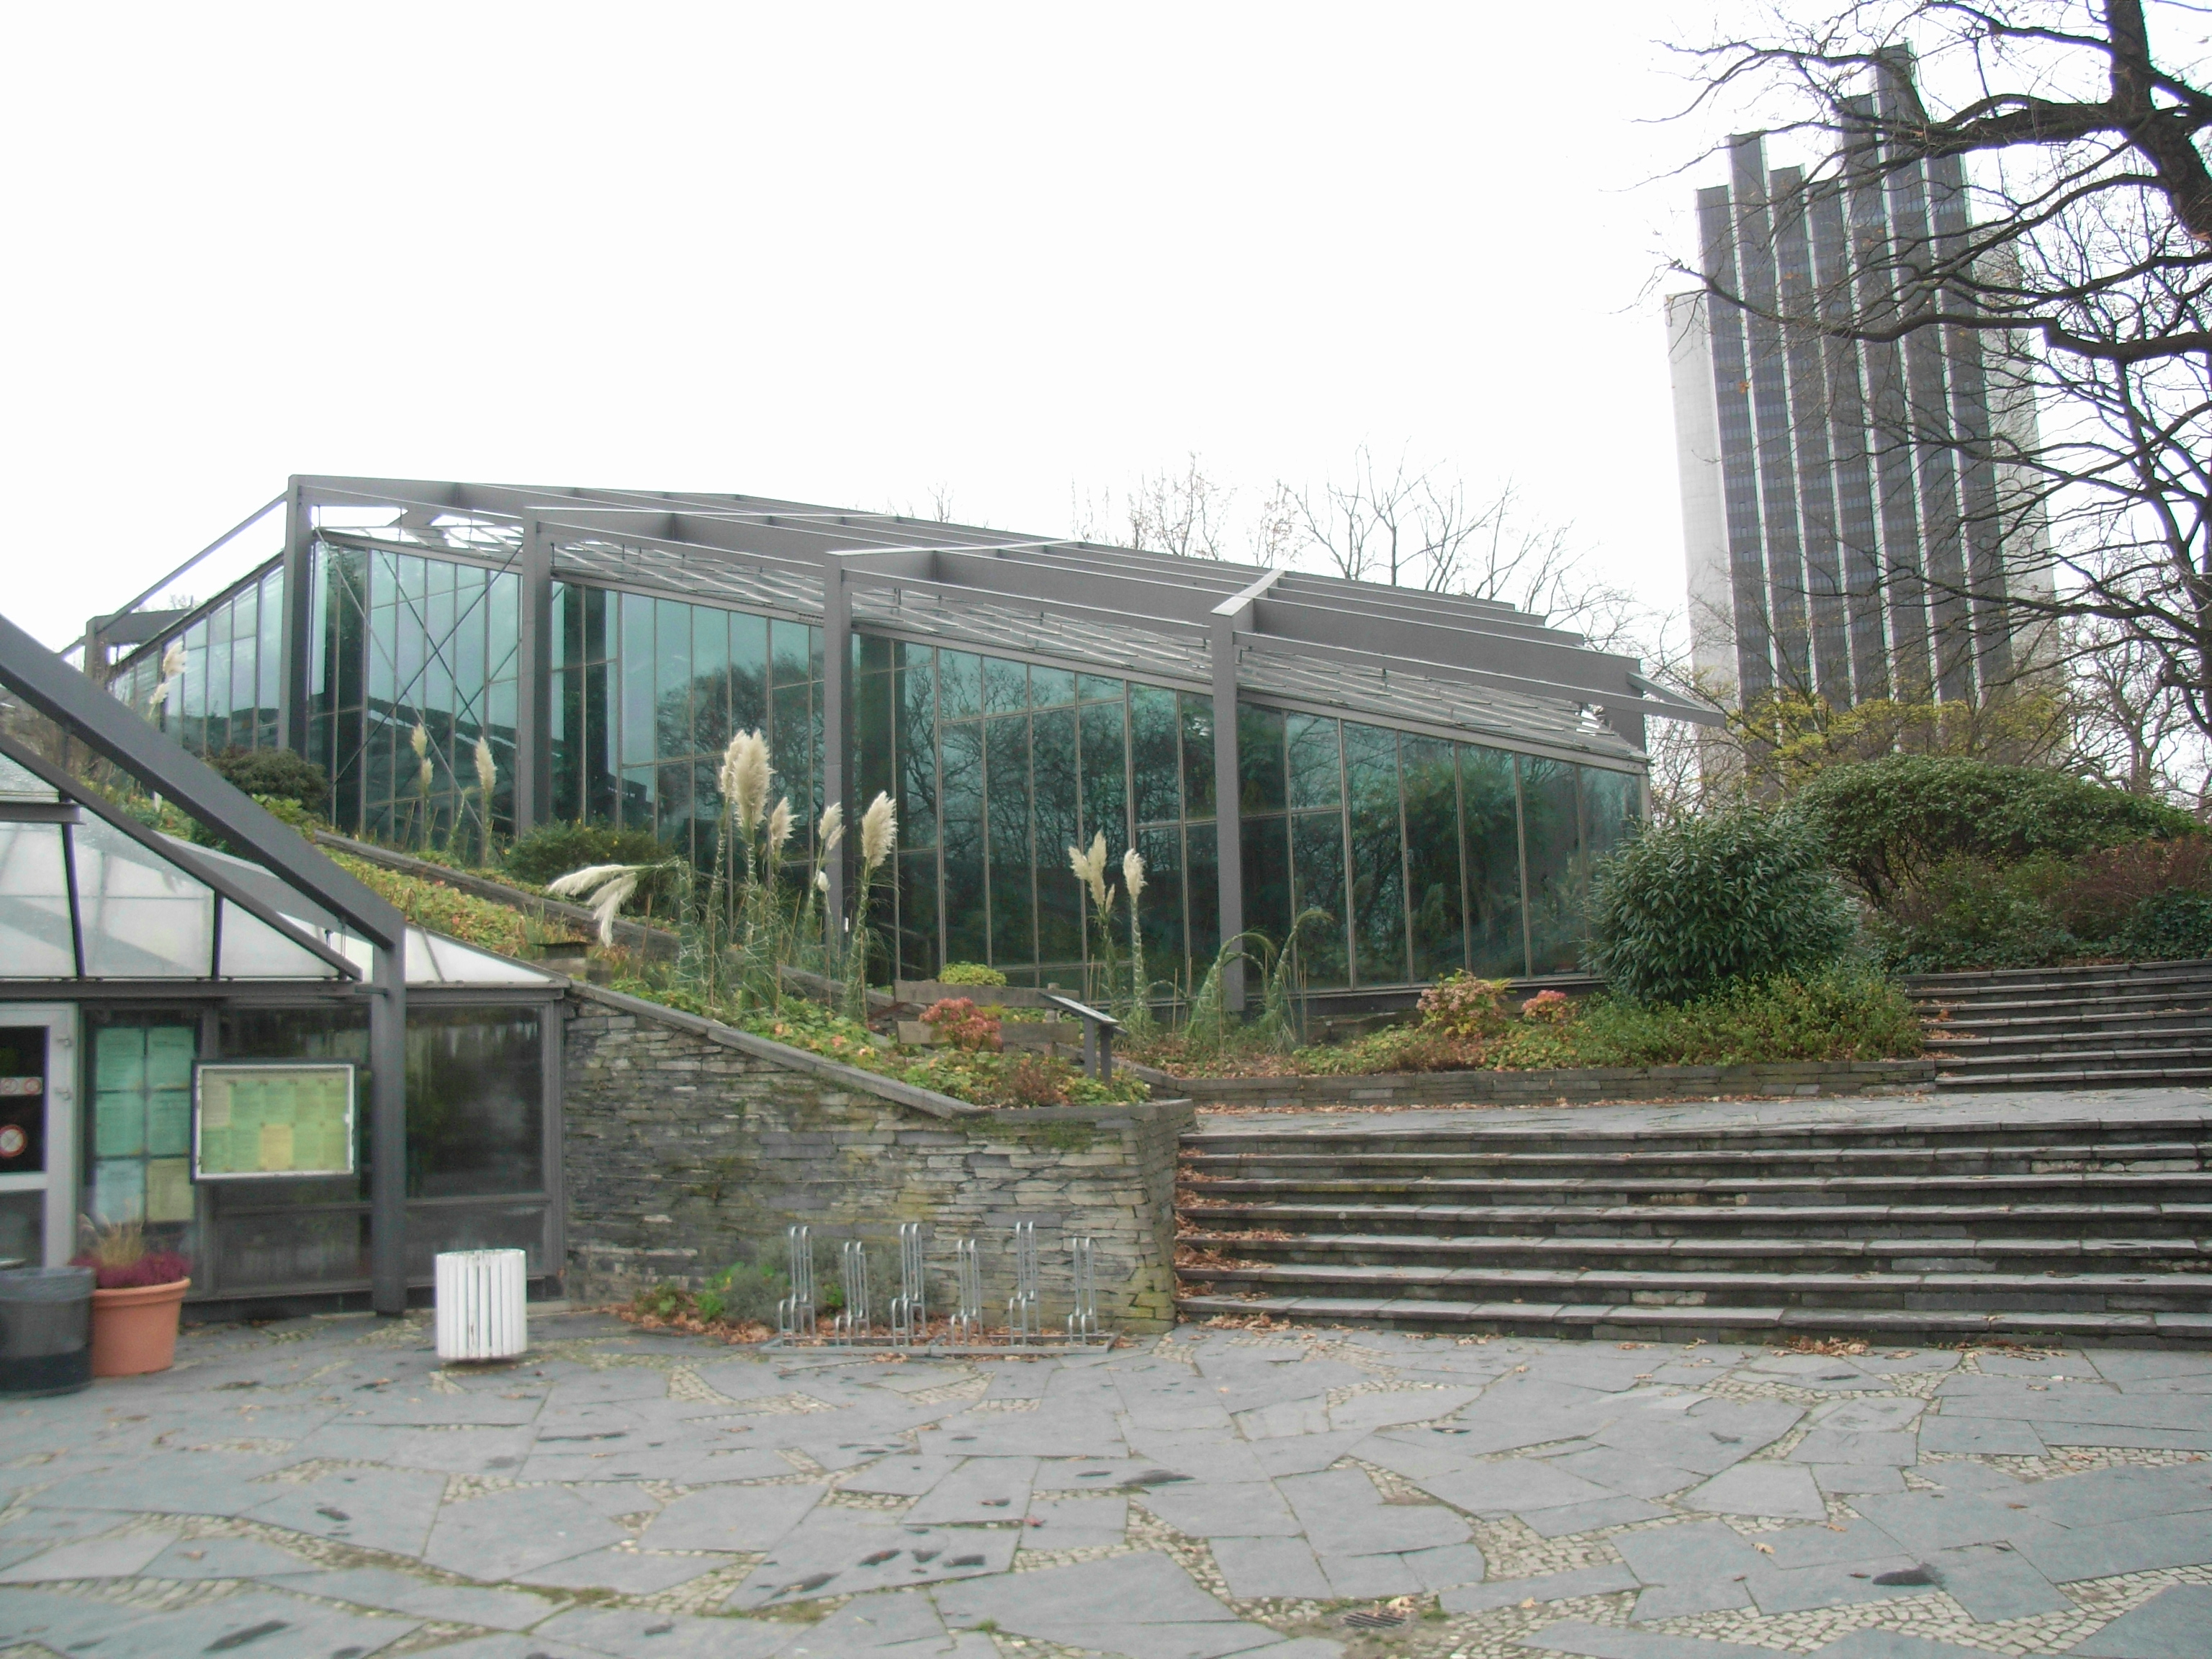 Filealter Botanischer Garten Hamburg 7jpg Wikimedia Commons